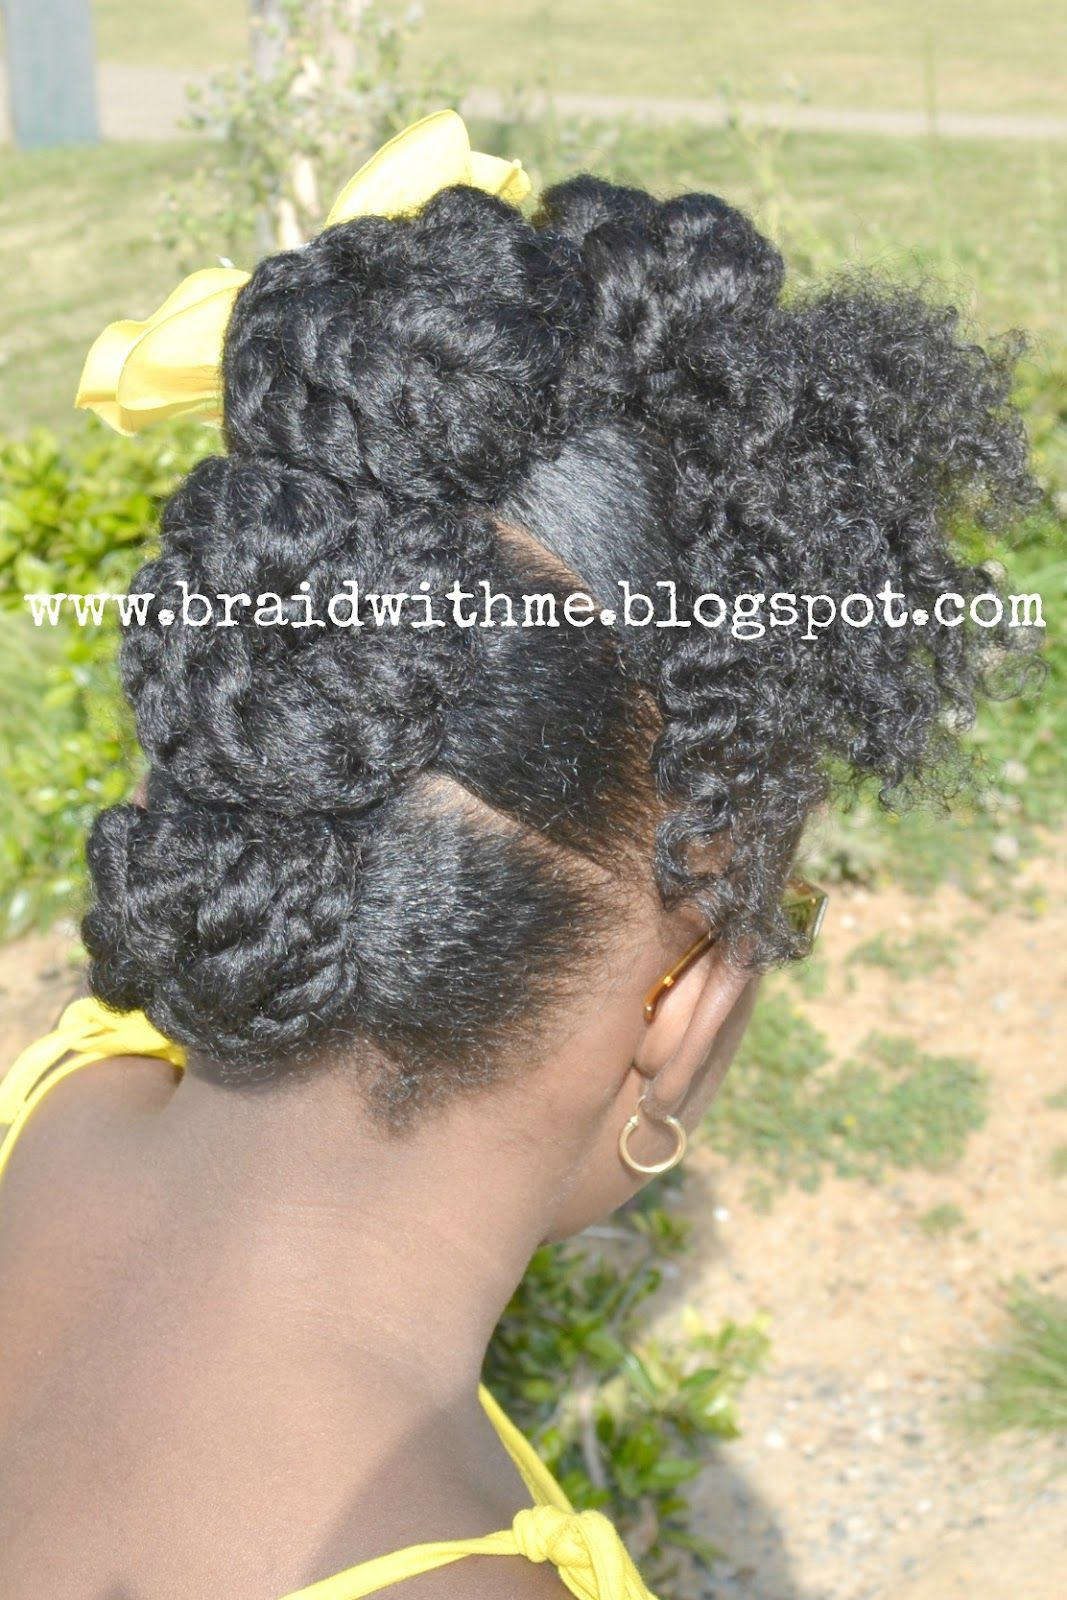 Braid with Me: April Hair Carnival: Copycat Style